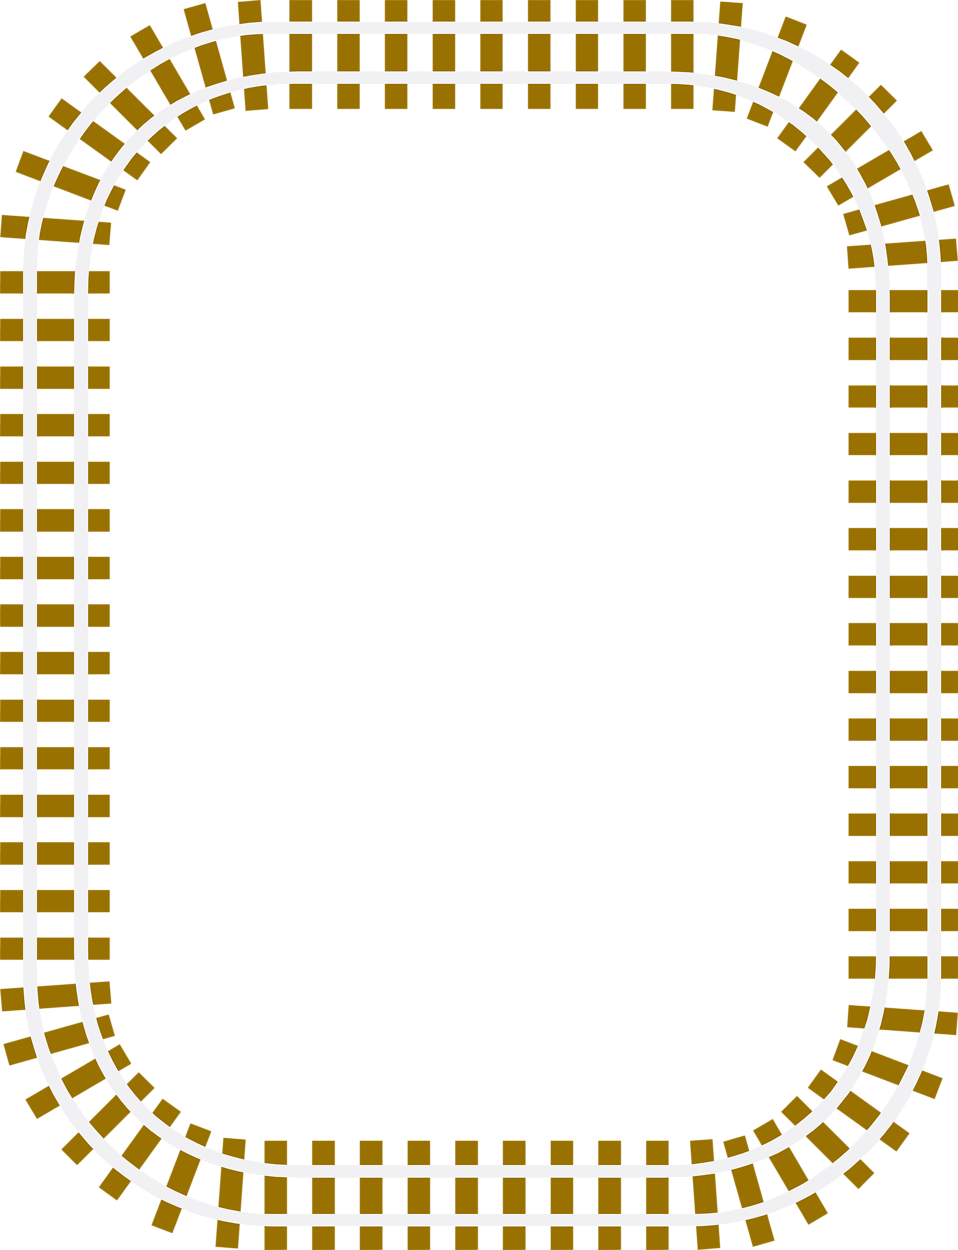 Train clipart borders. Illustration of a blank